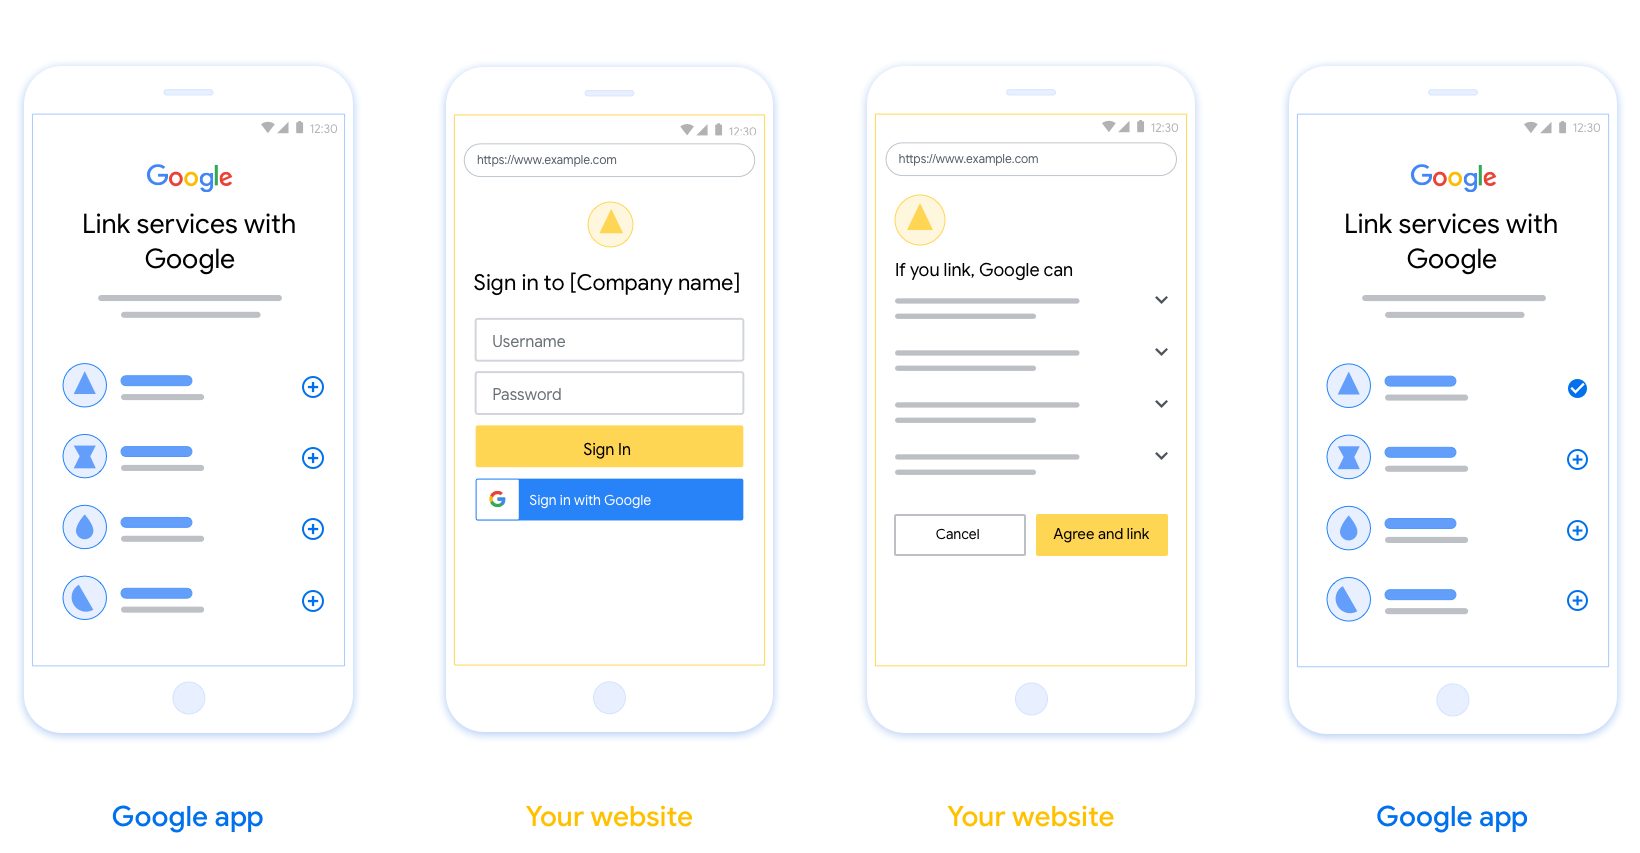 This figure shows the steps for a user to link their Google account             to your authentication system. The first screenshot shows             user-initiated linking from your platform. The second image shows             user sign-in to Google, while the third shows the user consent and             confirmation for linking their Google account with your app. The             final screenshot shows a successfully linked user account in the             Google app.